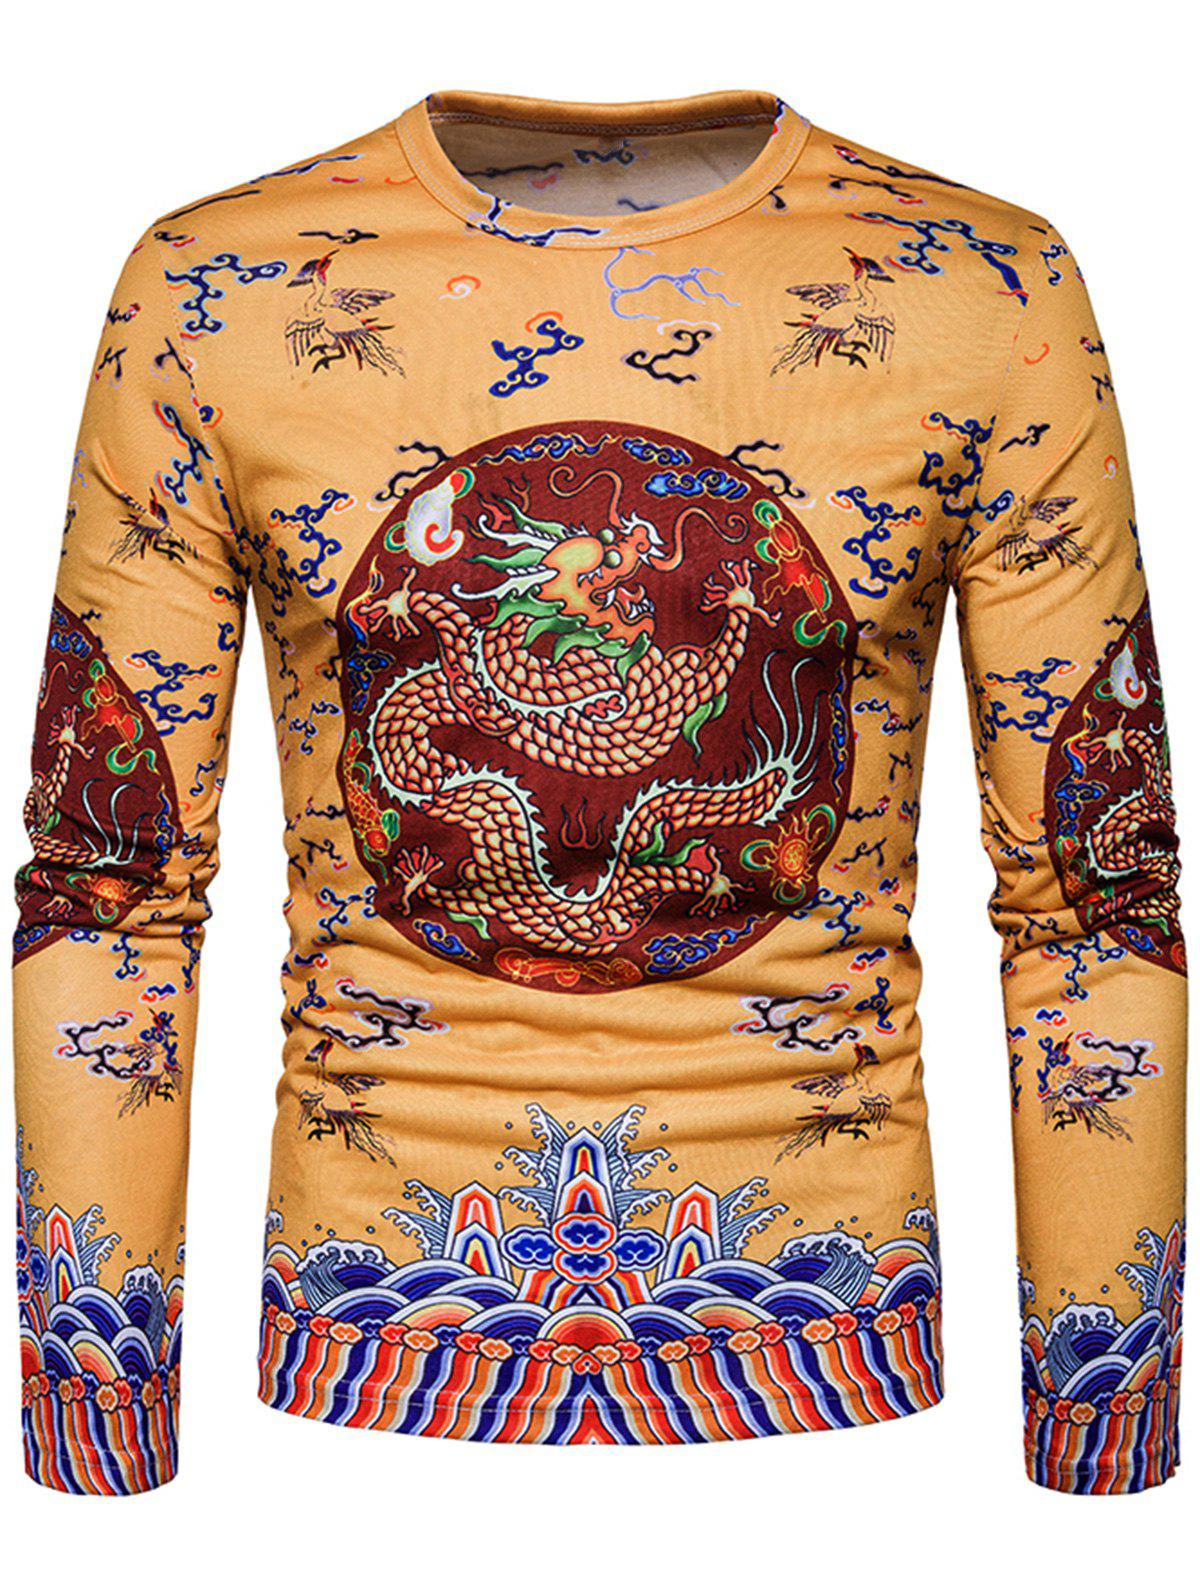 Online Dragon Chinese Style Printed Long Sleeve T-shirt